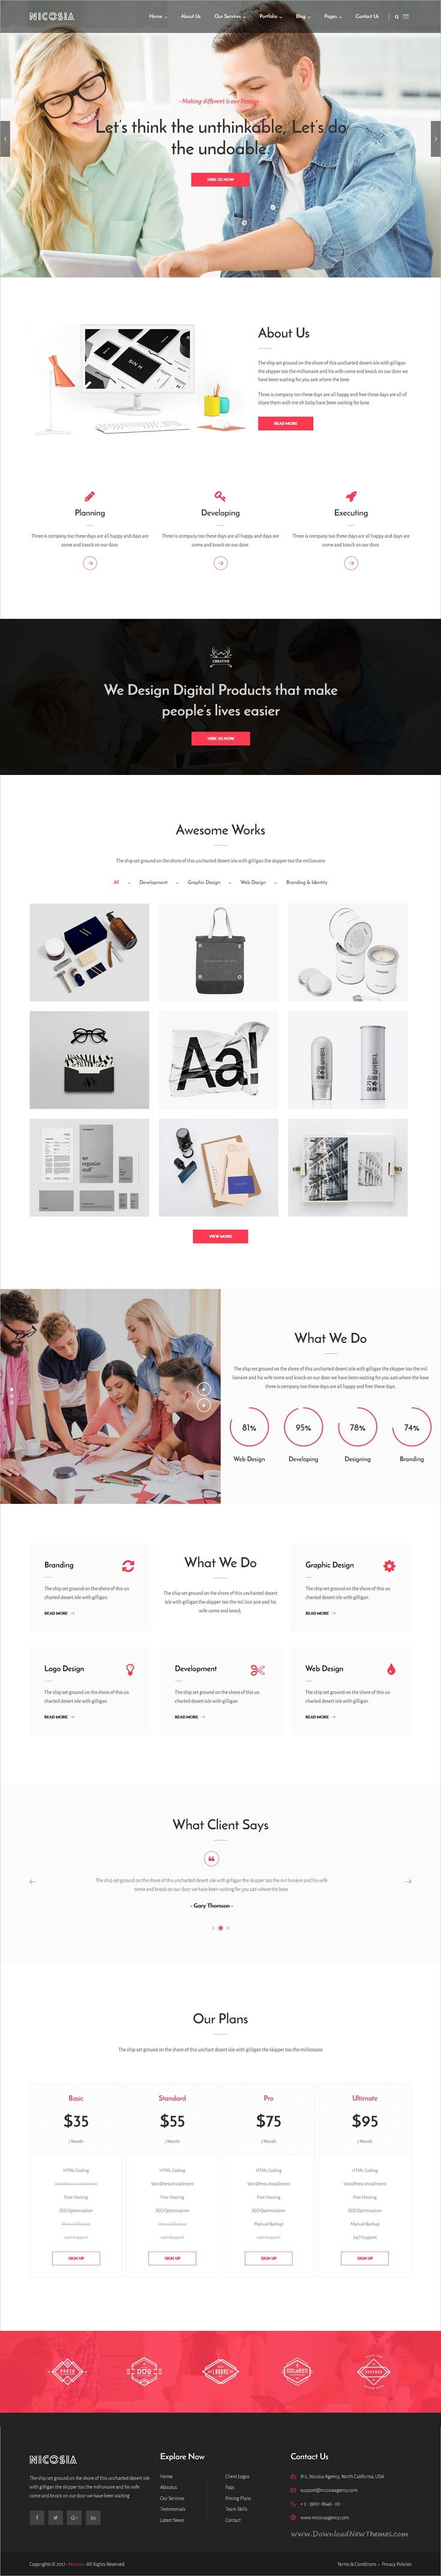 Nicosia is clean and modern design 3in1 responsive #WordPress theme for online #marketing, #SEO and social media agency website download now..